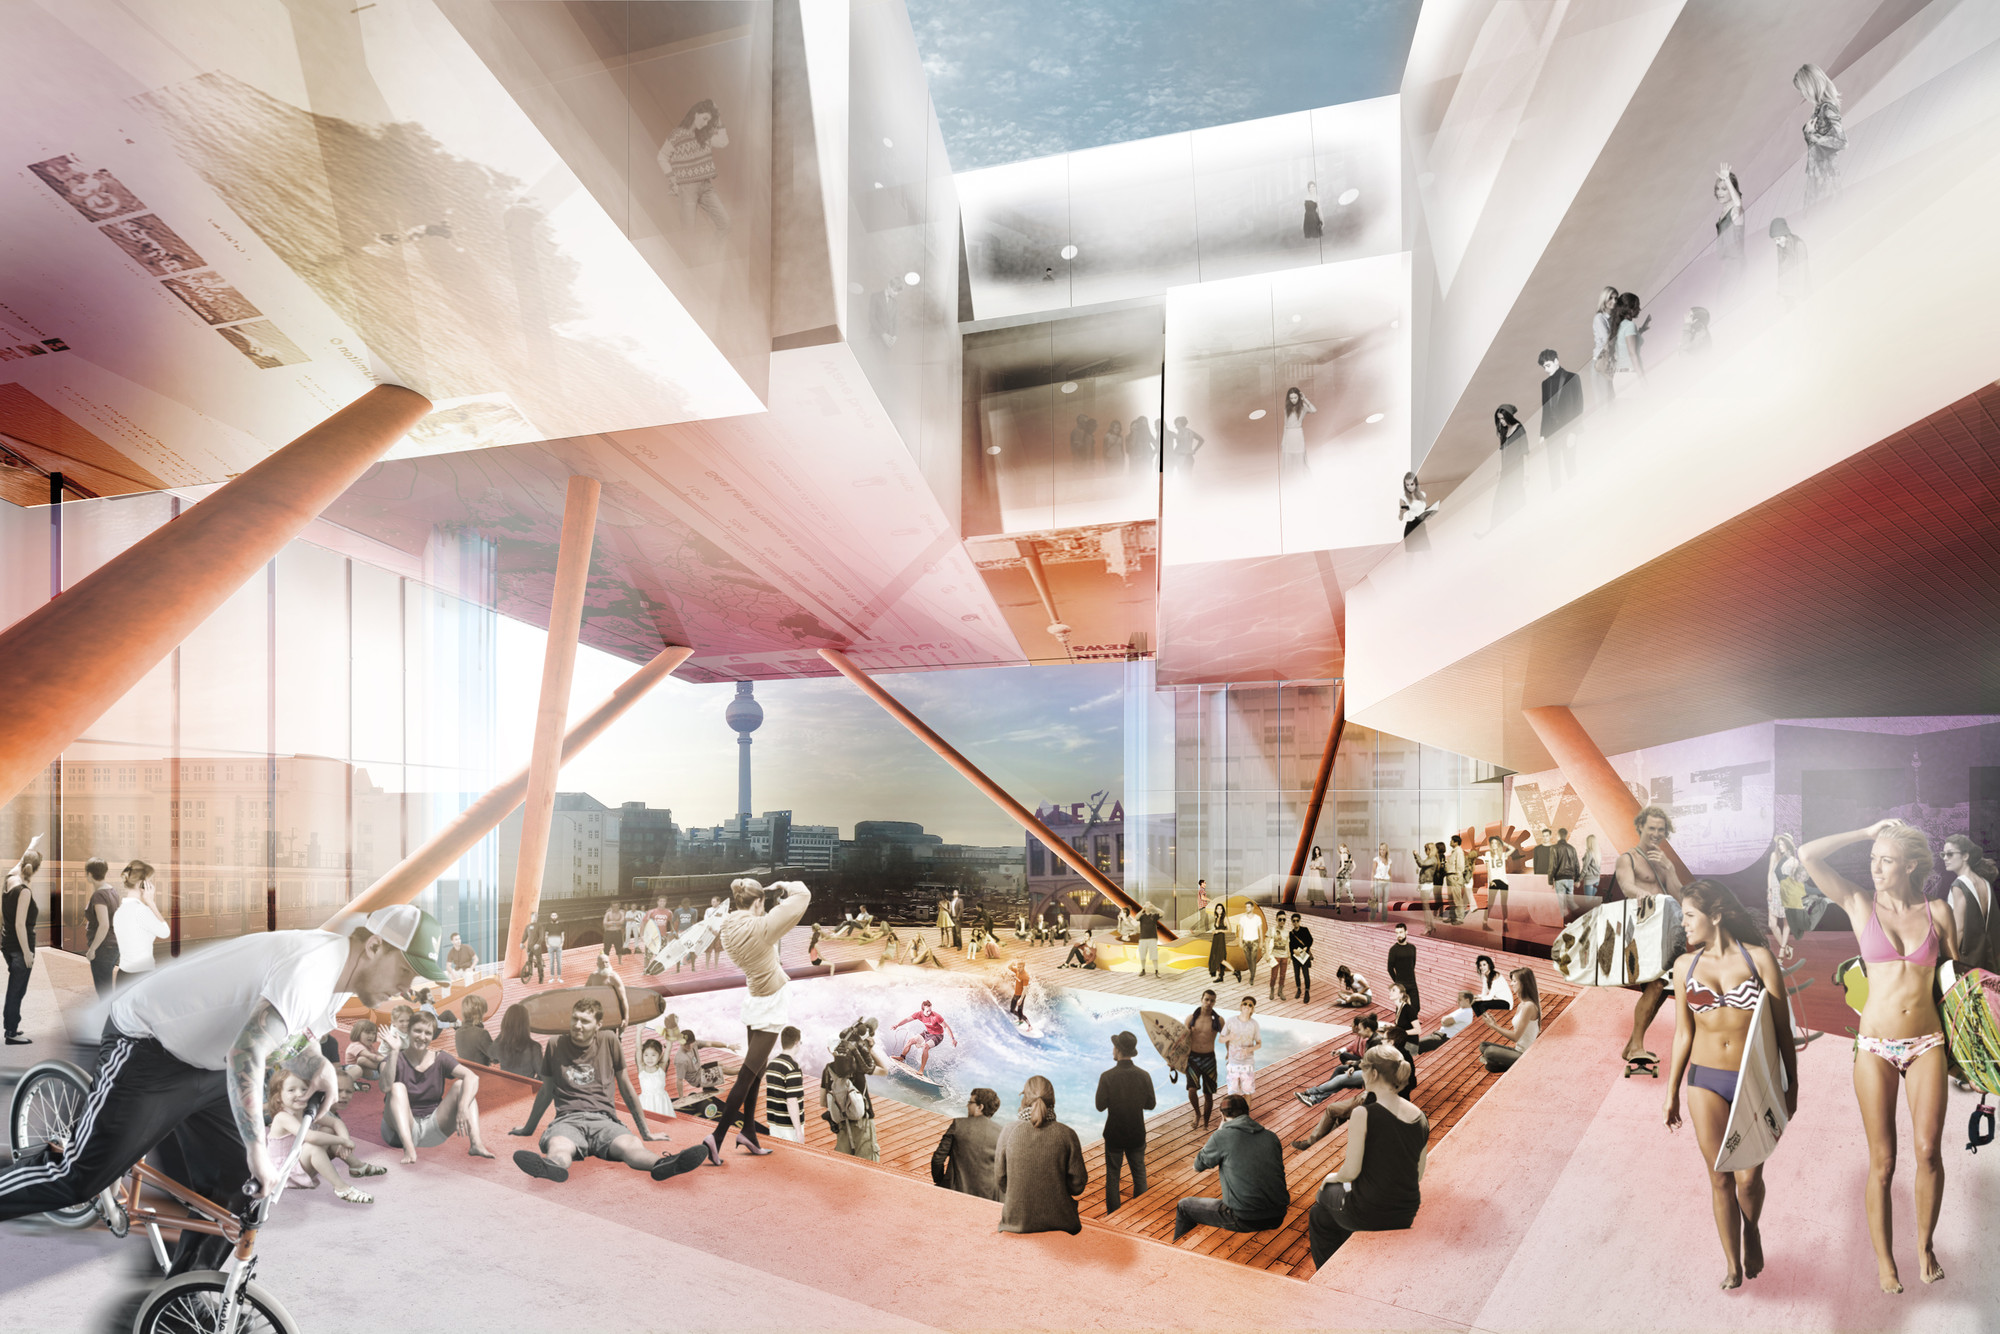 J Mayer H Wins Competition To Design Berlin Experience